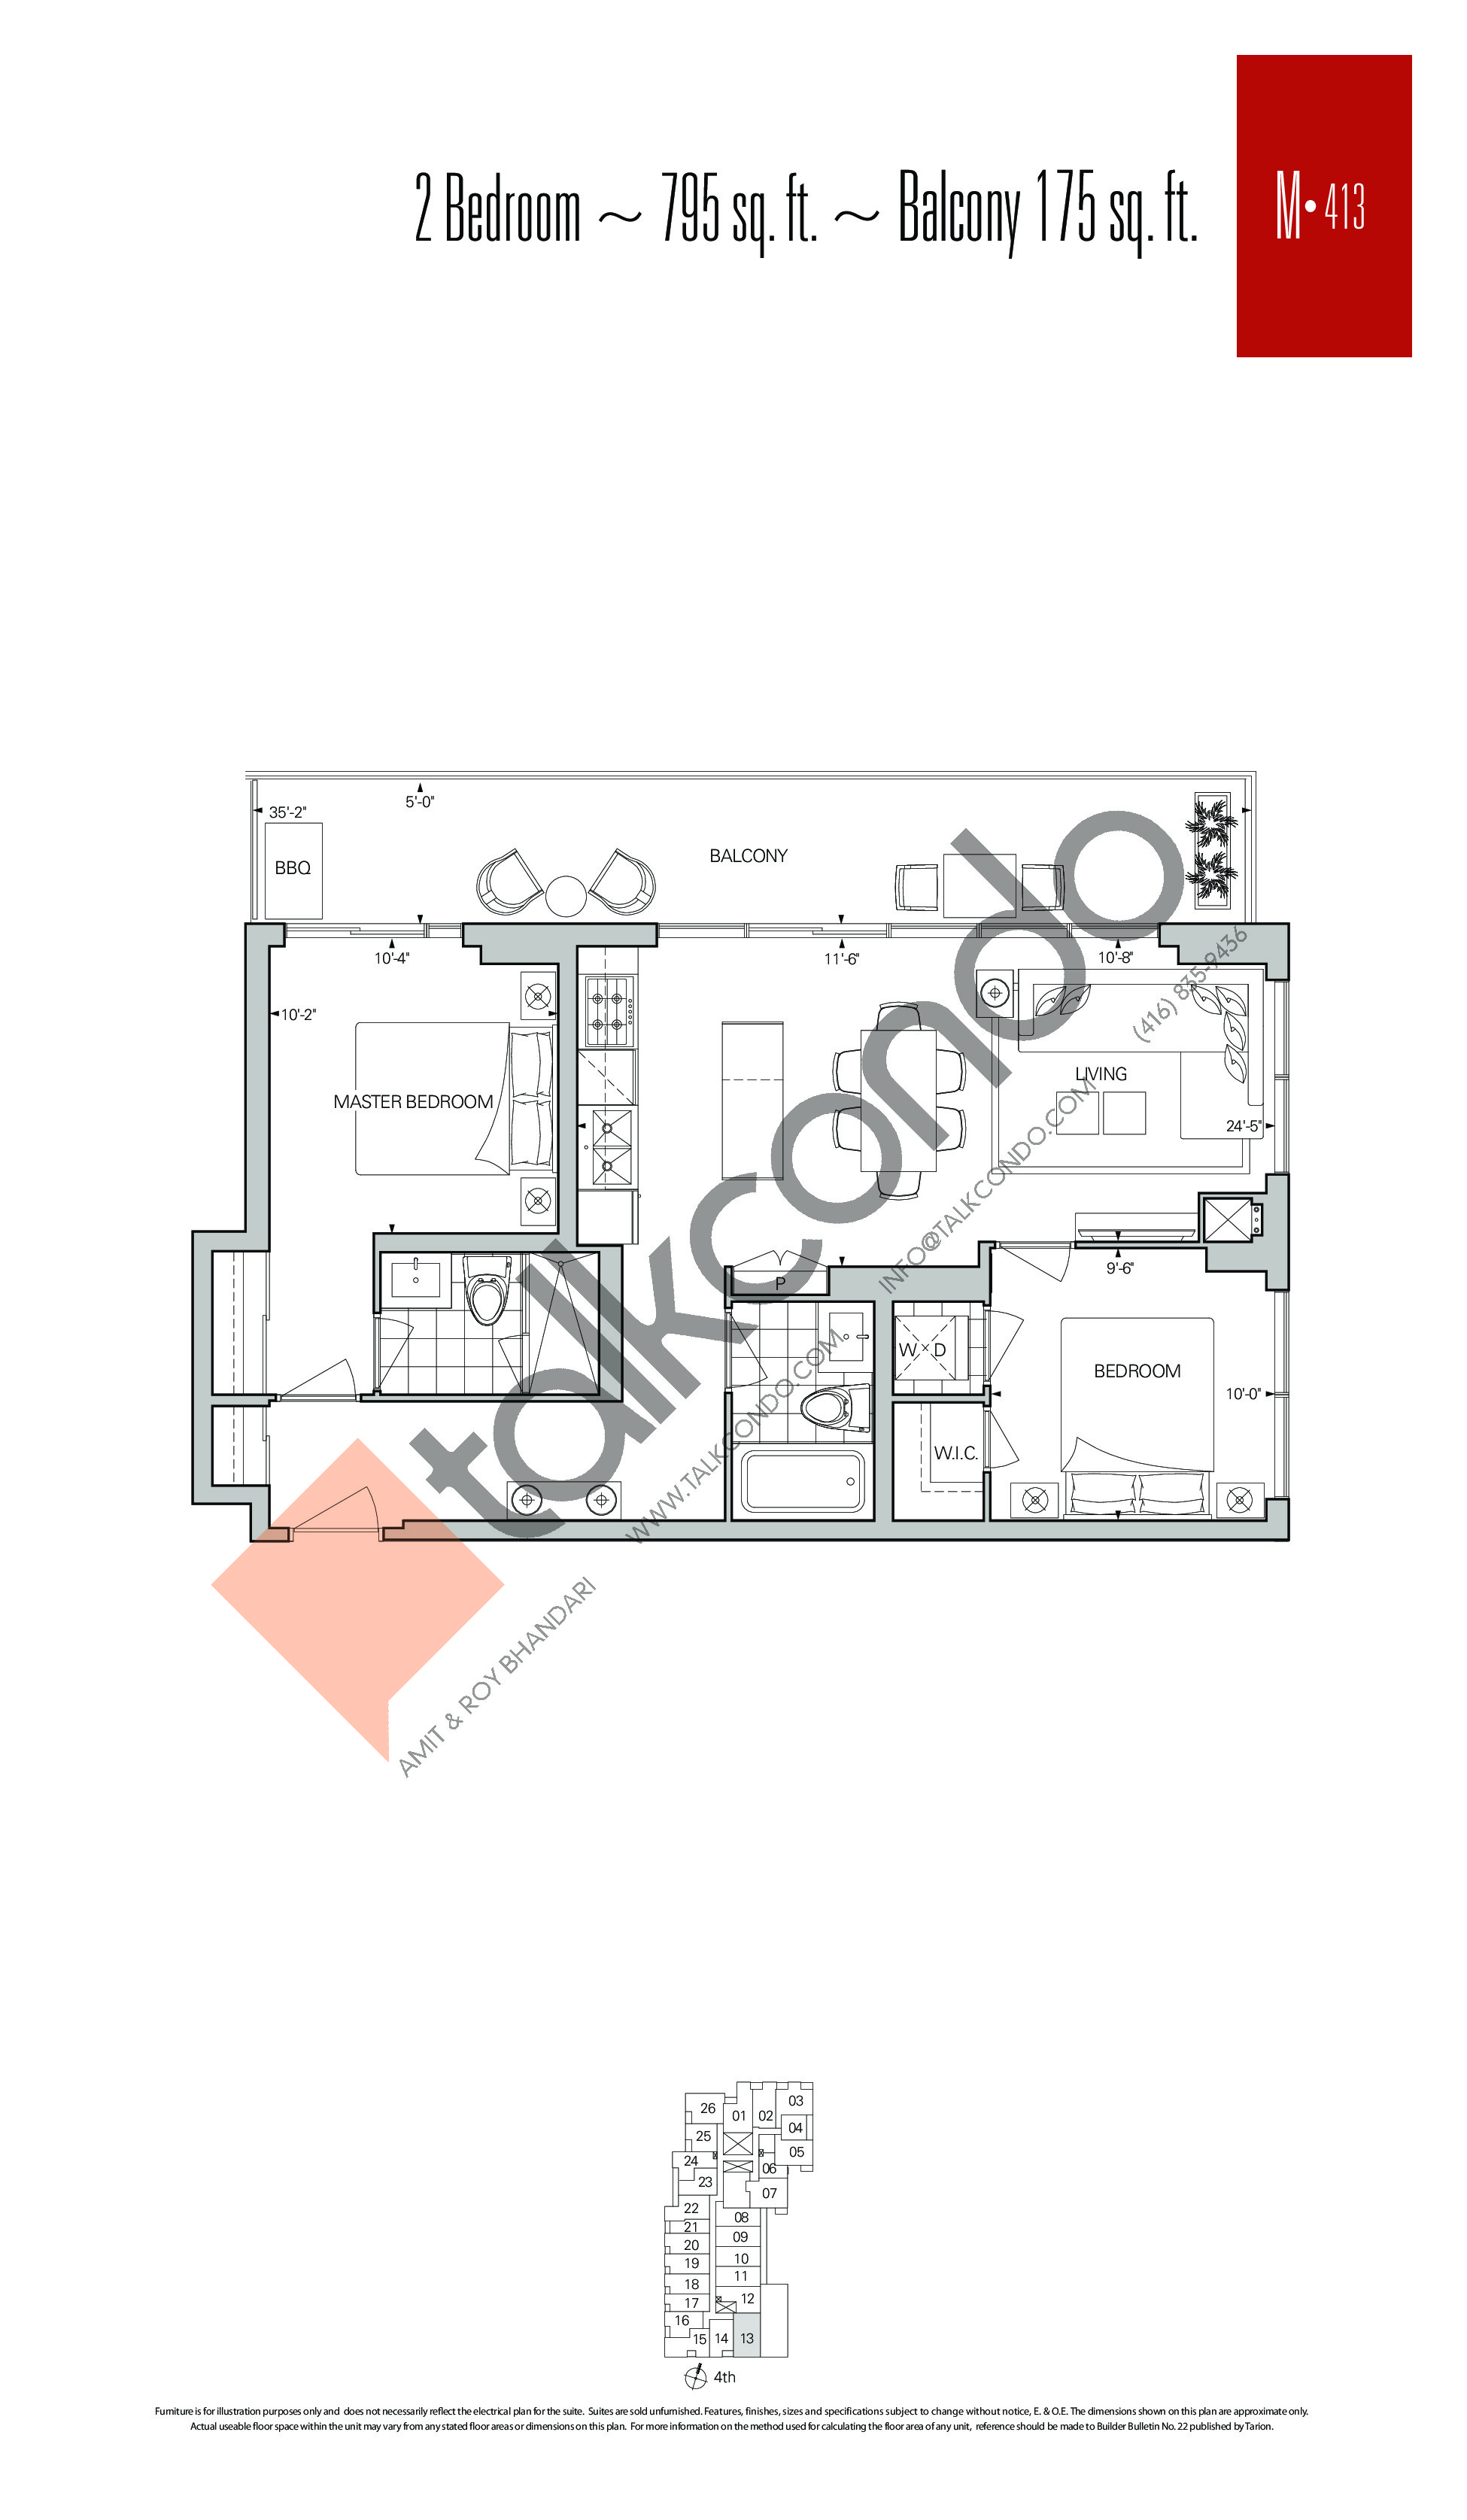 M-413 Floor Plan at Rise Condos - 795 sq.ft